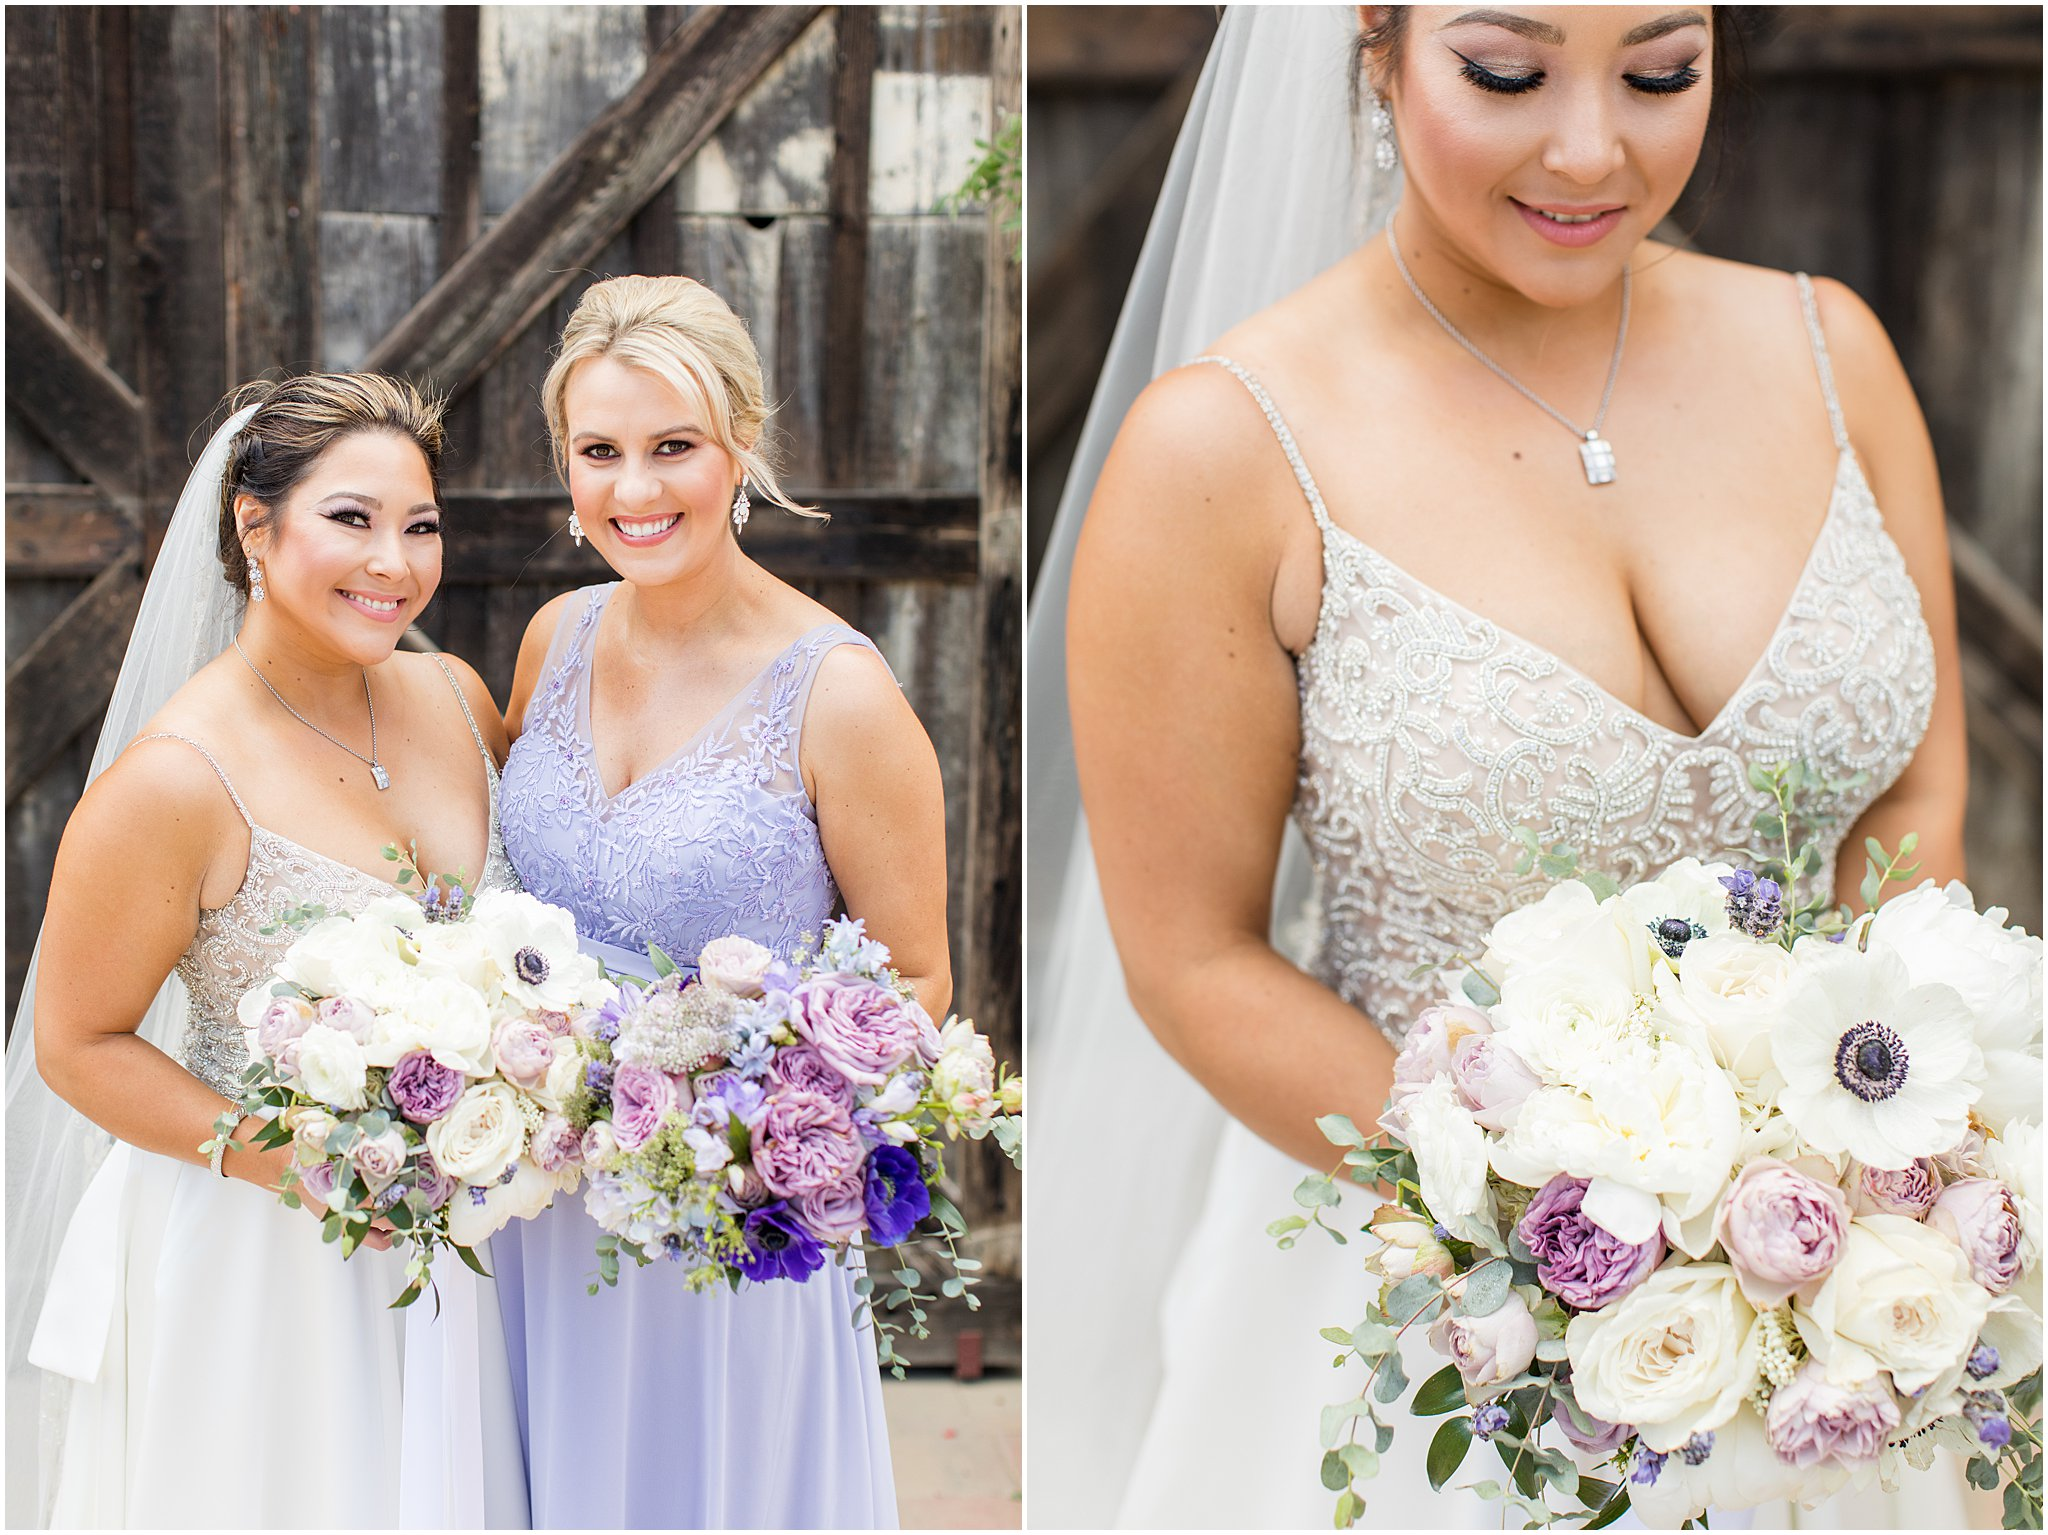 2019 wedding san juan bautista hacienda de leal vineyards bay area wedding photographer_0031.jpg